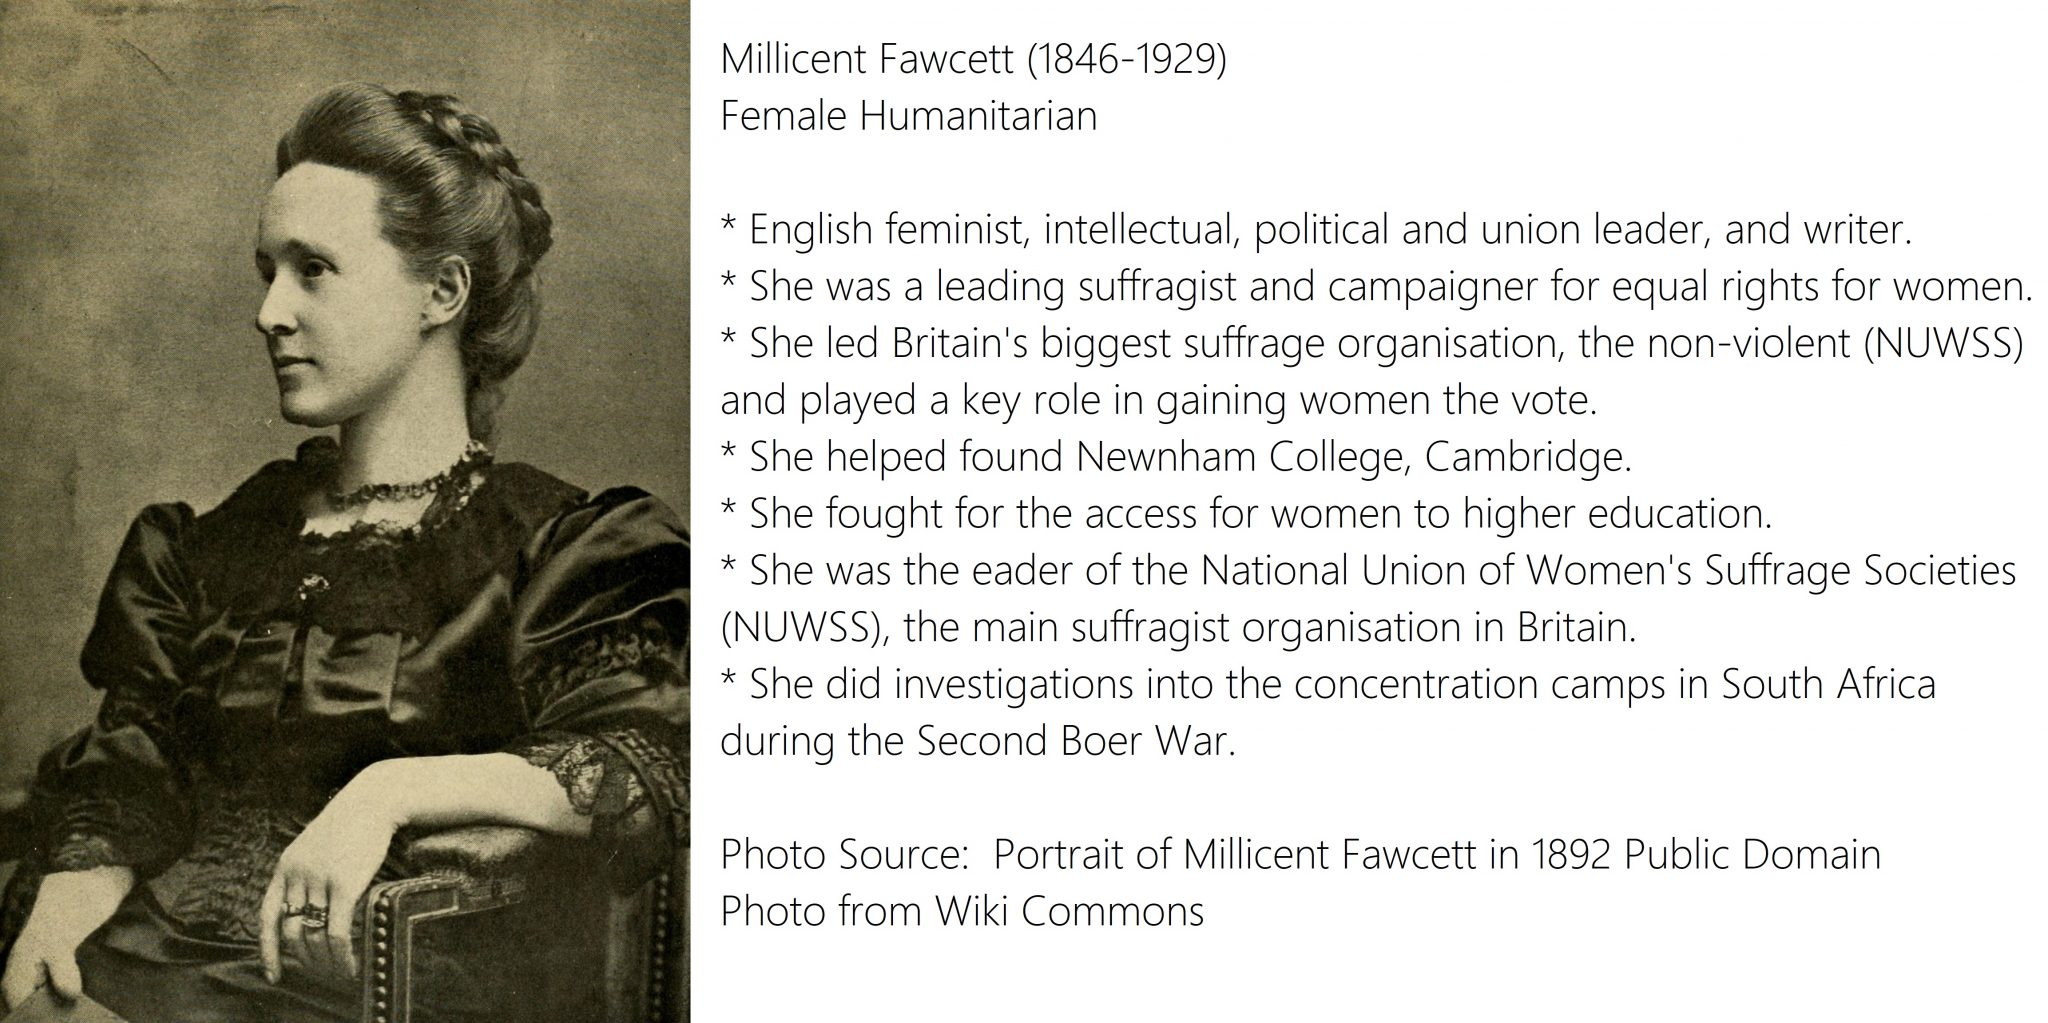 millicent fawcett